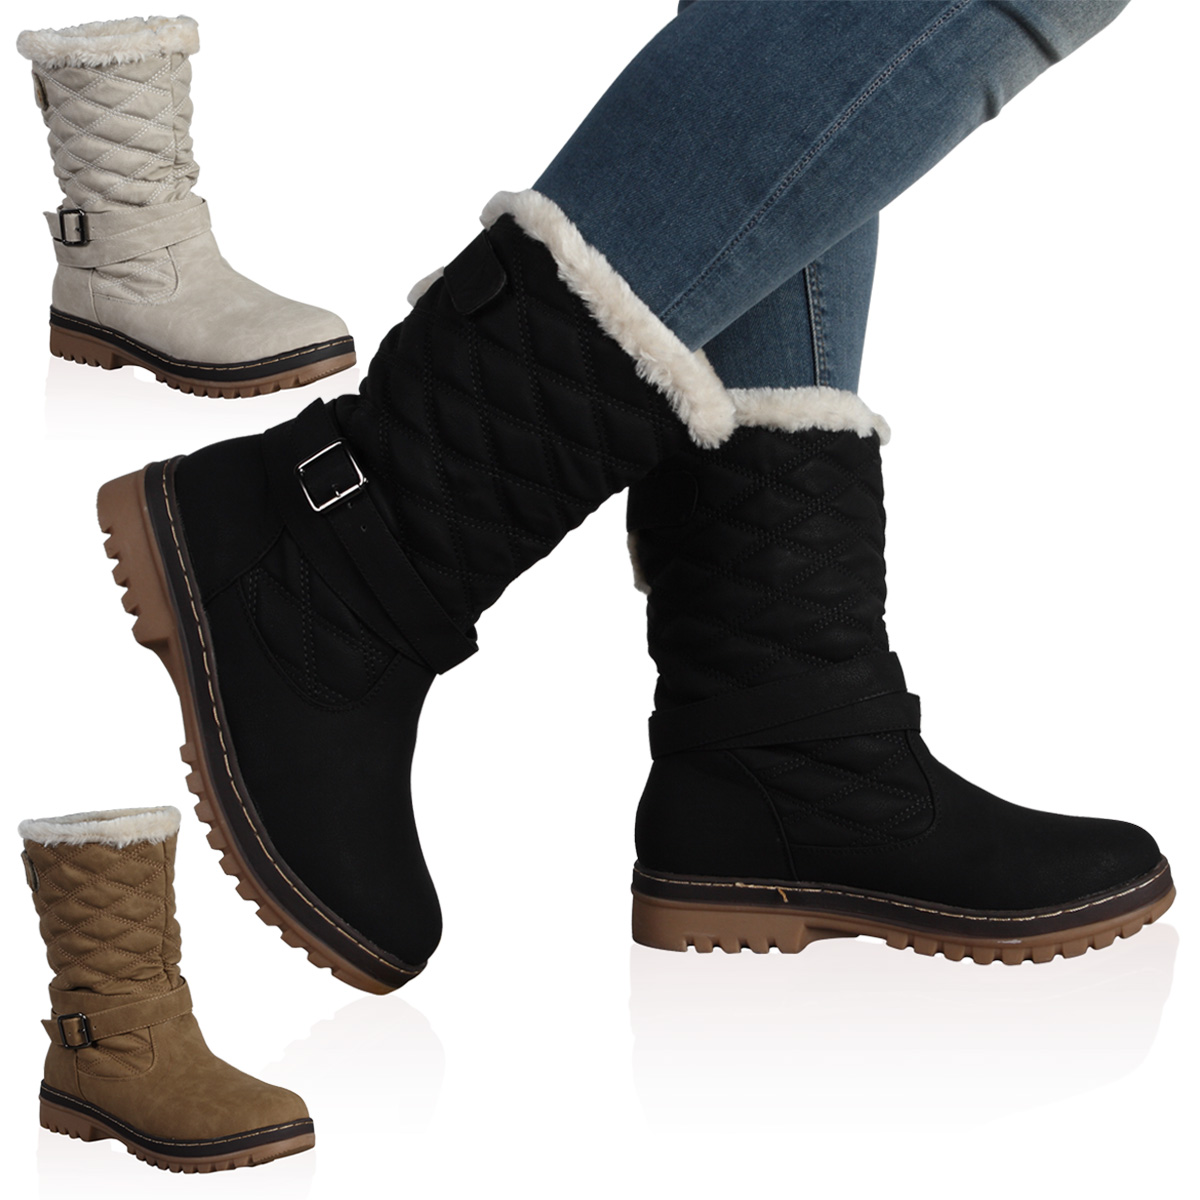 Size 5 Snow Boots - Boot Hto